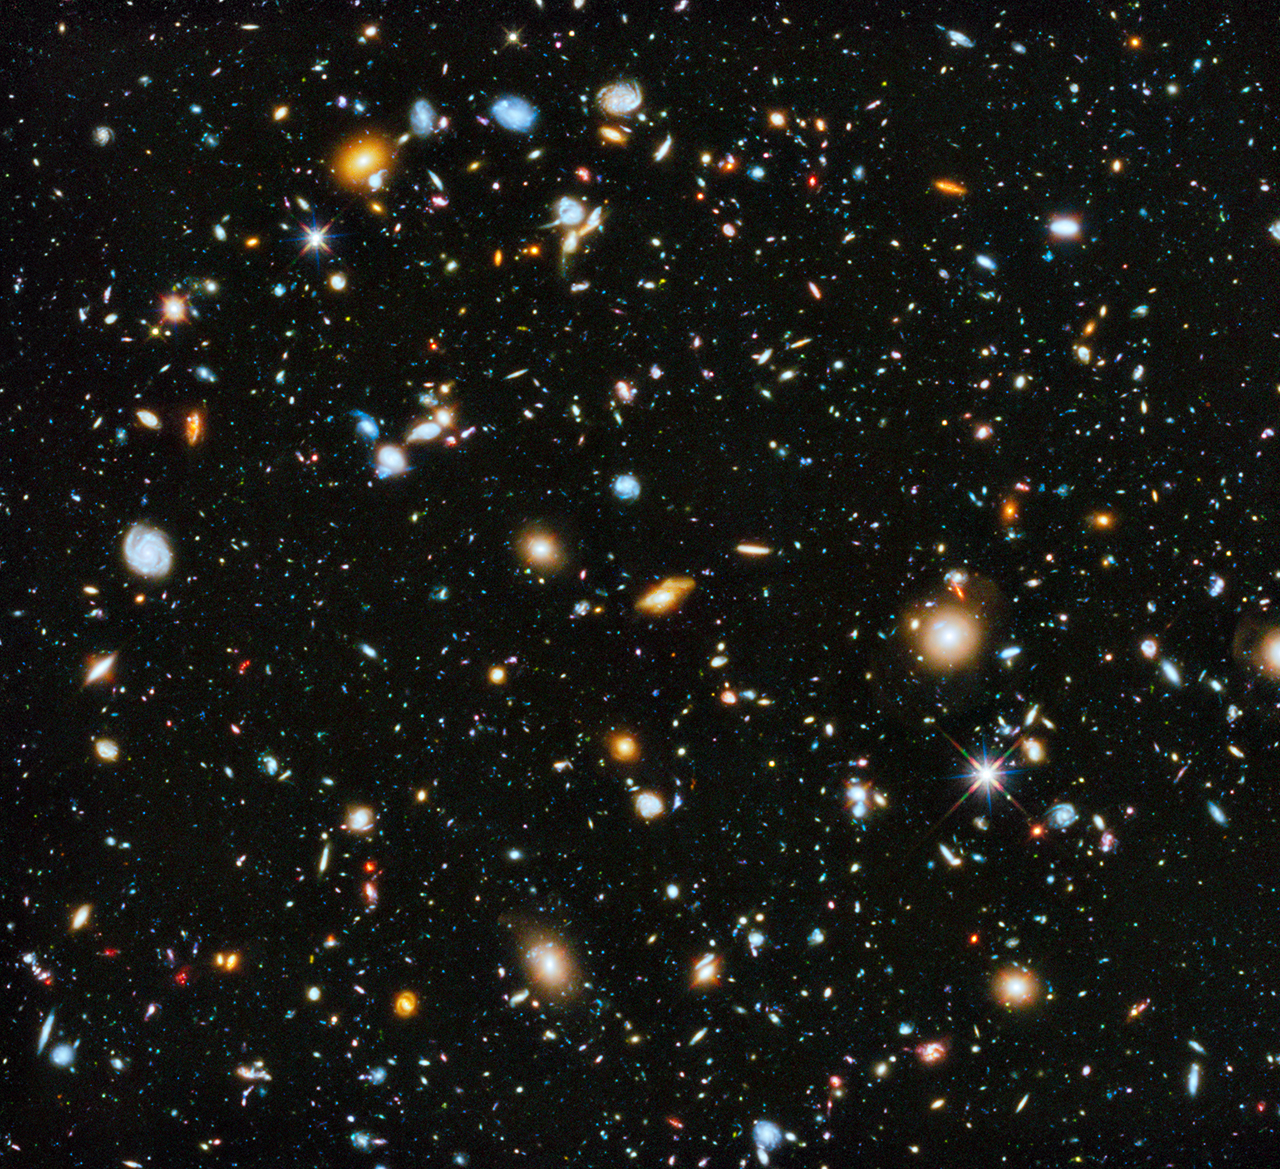 Deep space image